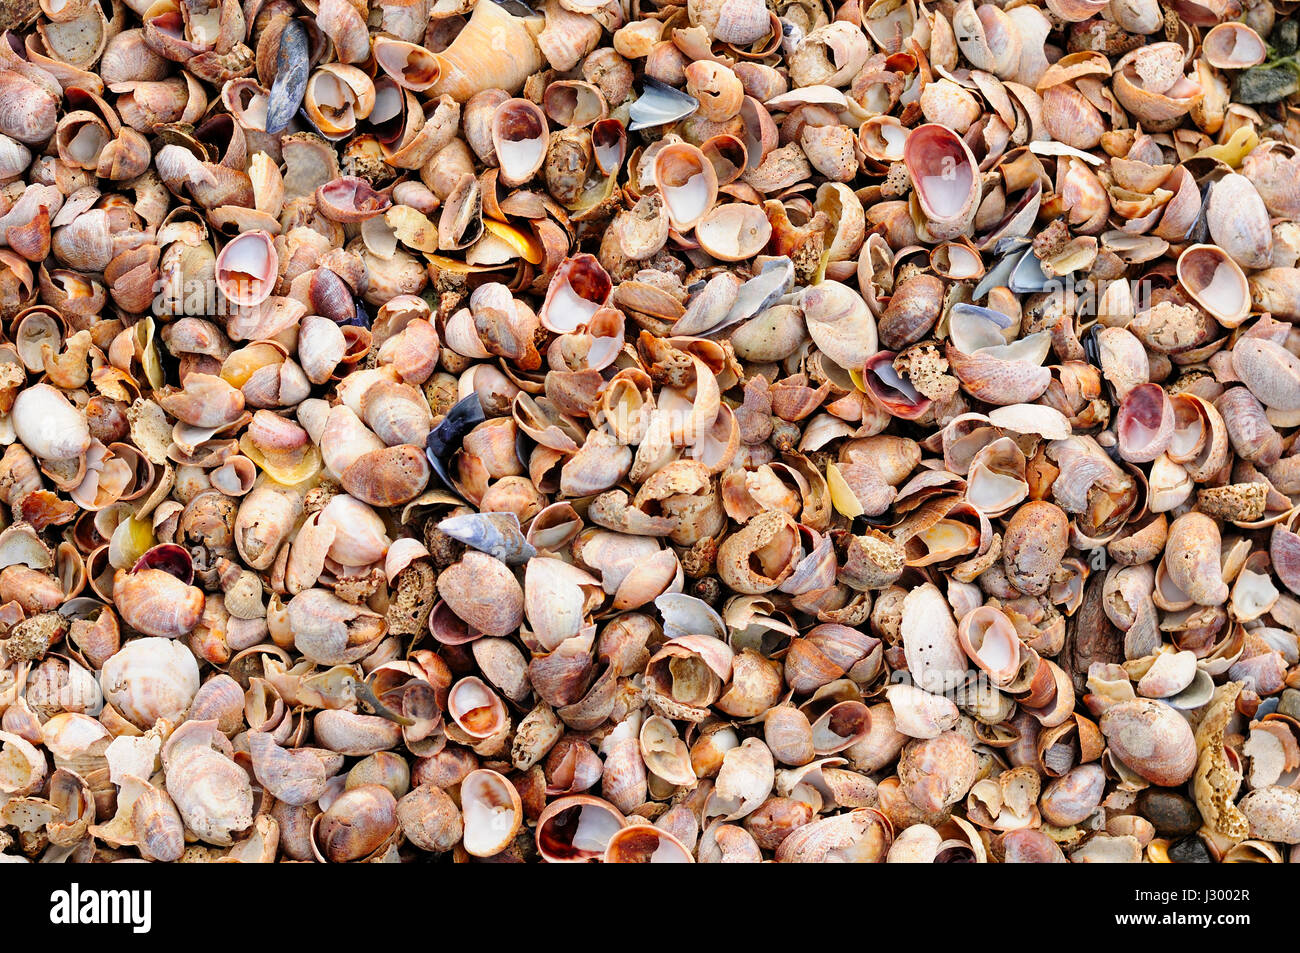 Many different seashells at lowtide in long island sound at silver many different seashells at lowtide in long island sound at silver sands state park in milford connecticut on an overcast day nvjuhfo Image collections